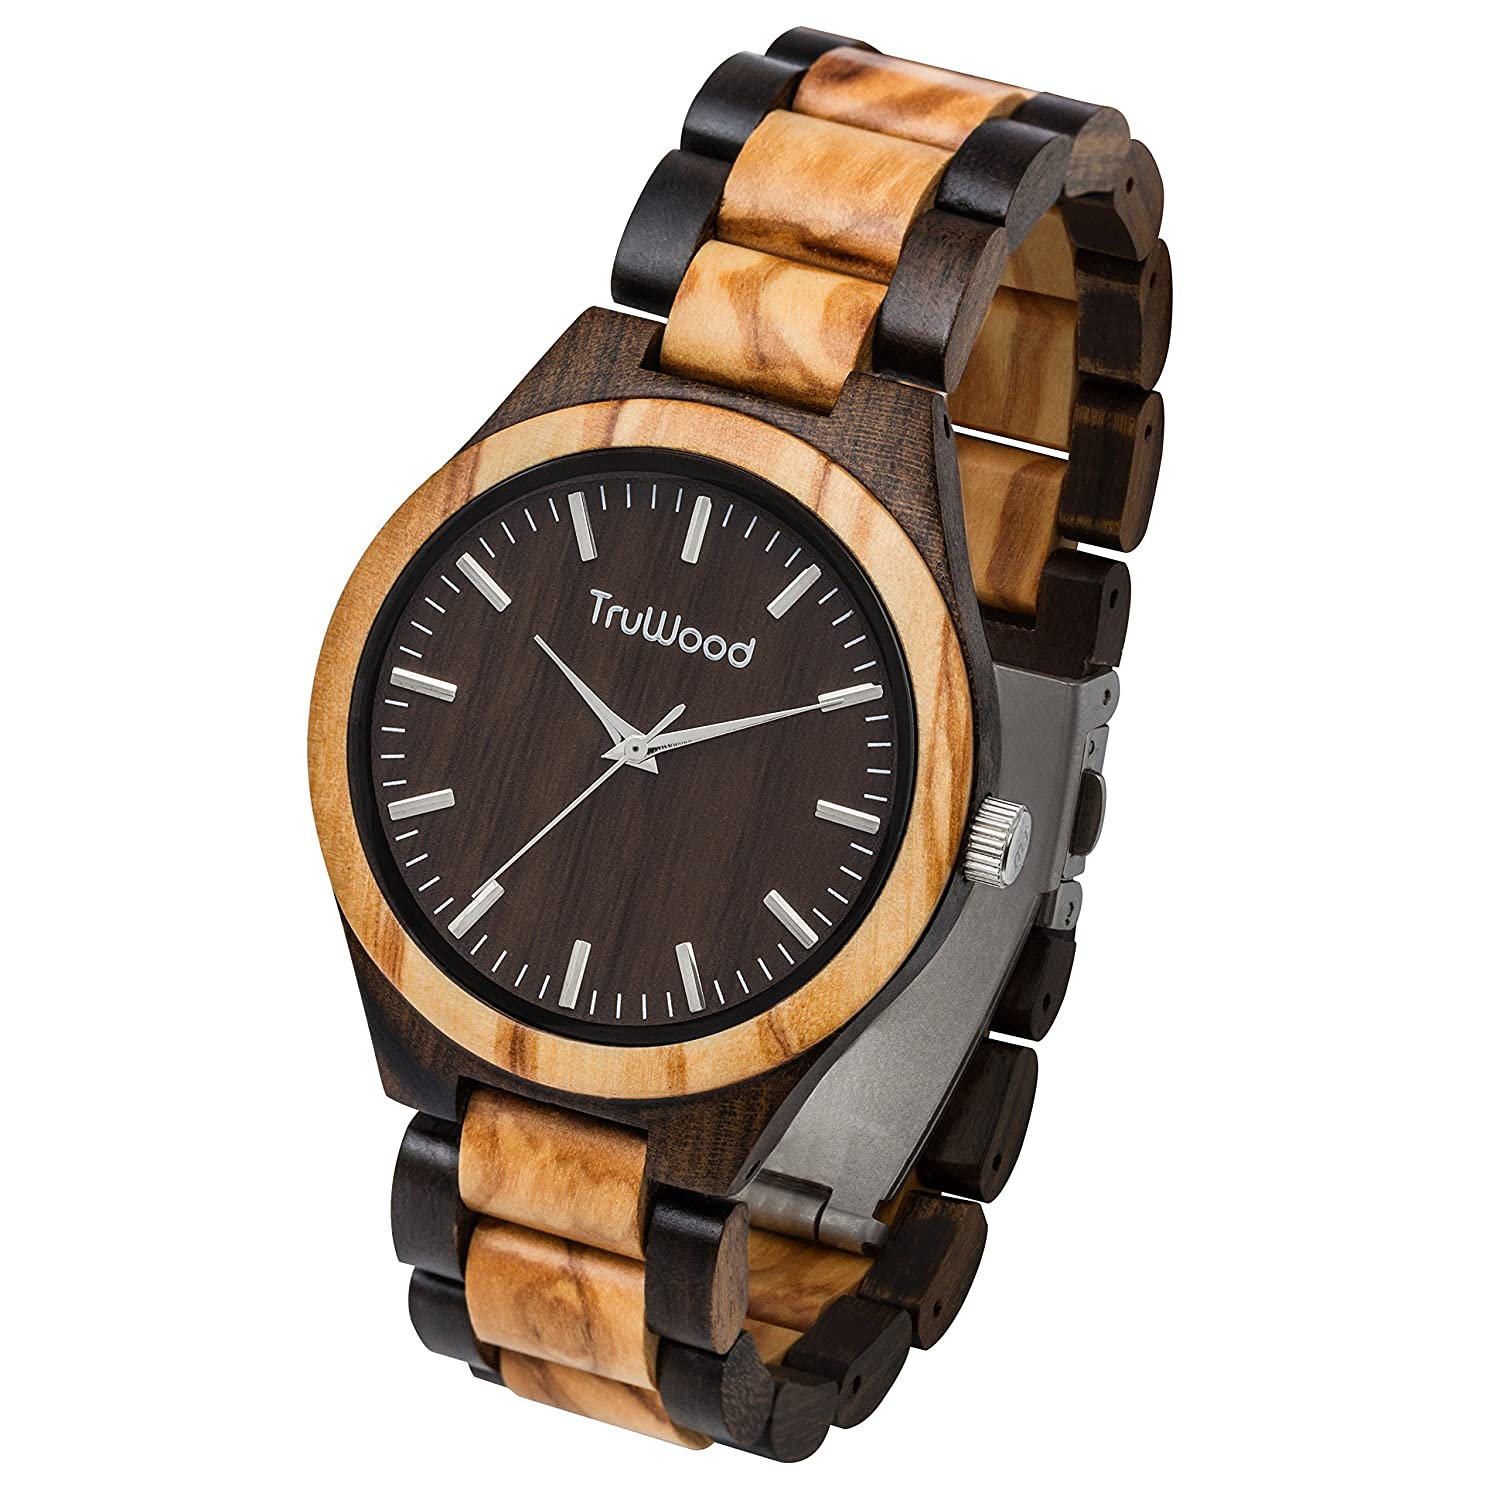 accessories trees purchase pin our every truwood fashion we hybrid wooden and plant for by watches the